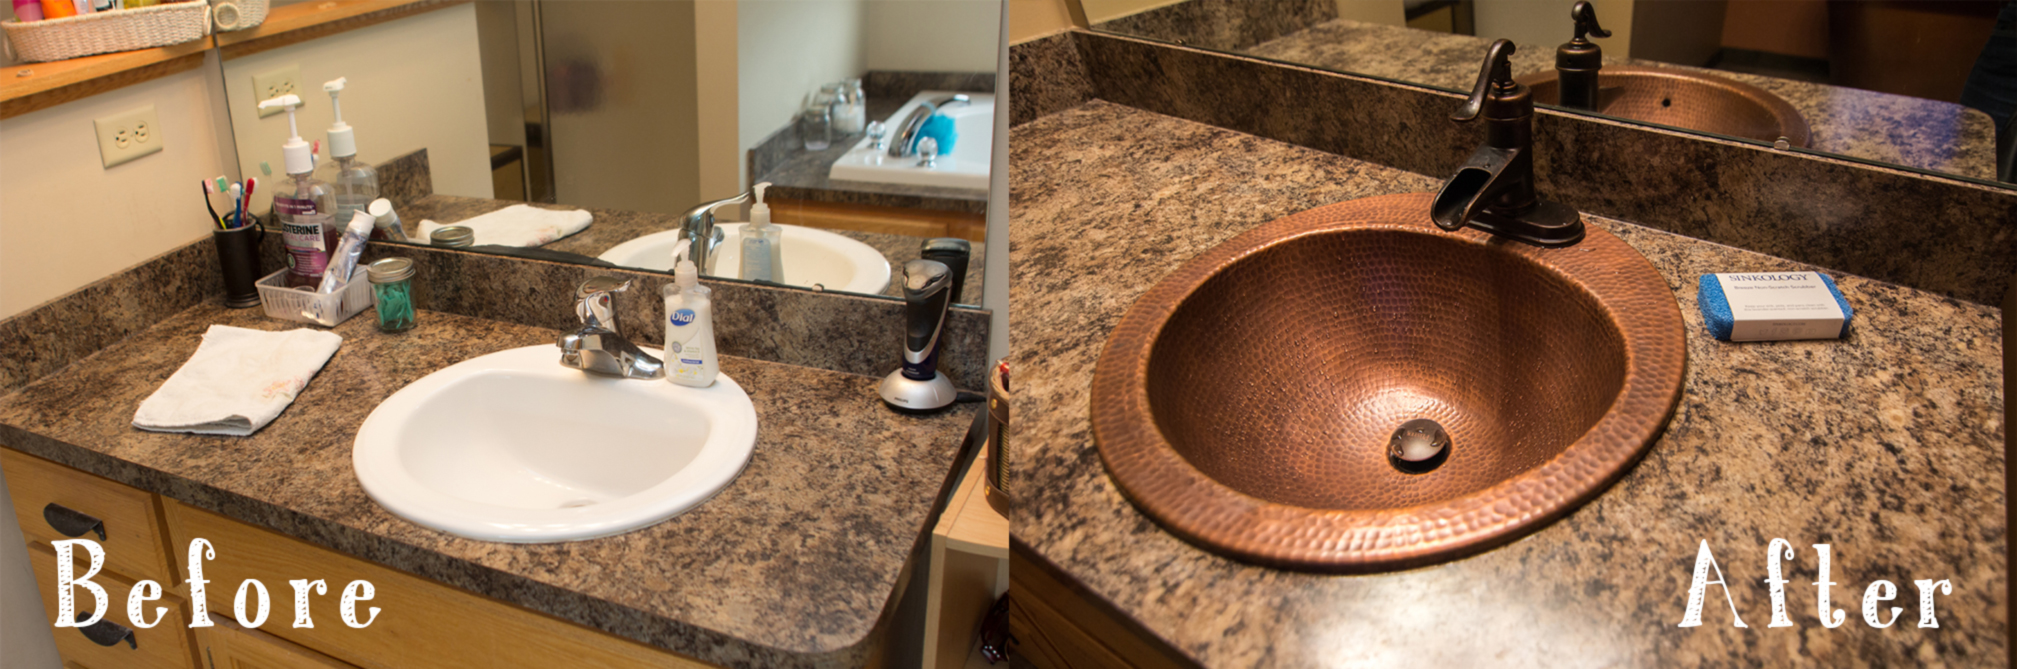 How To Replace A Copper Bathroom Sink